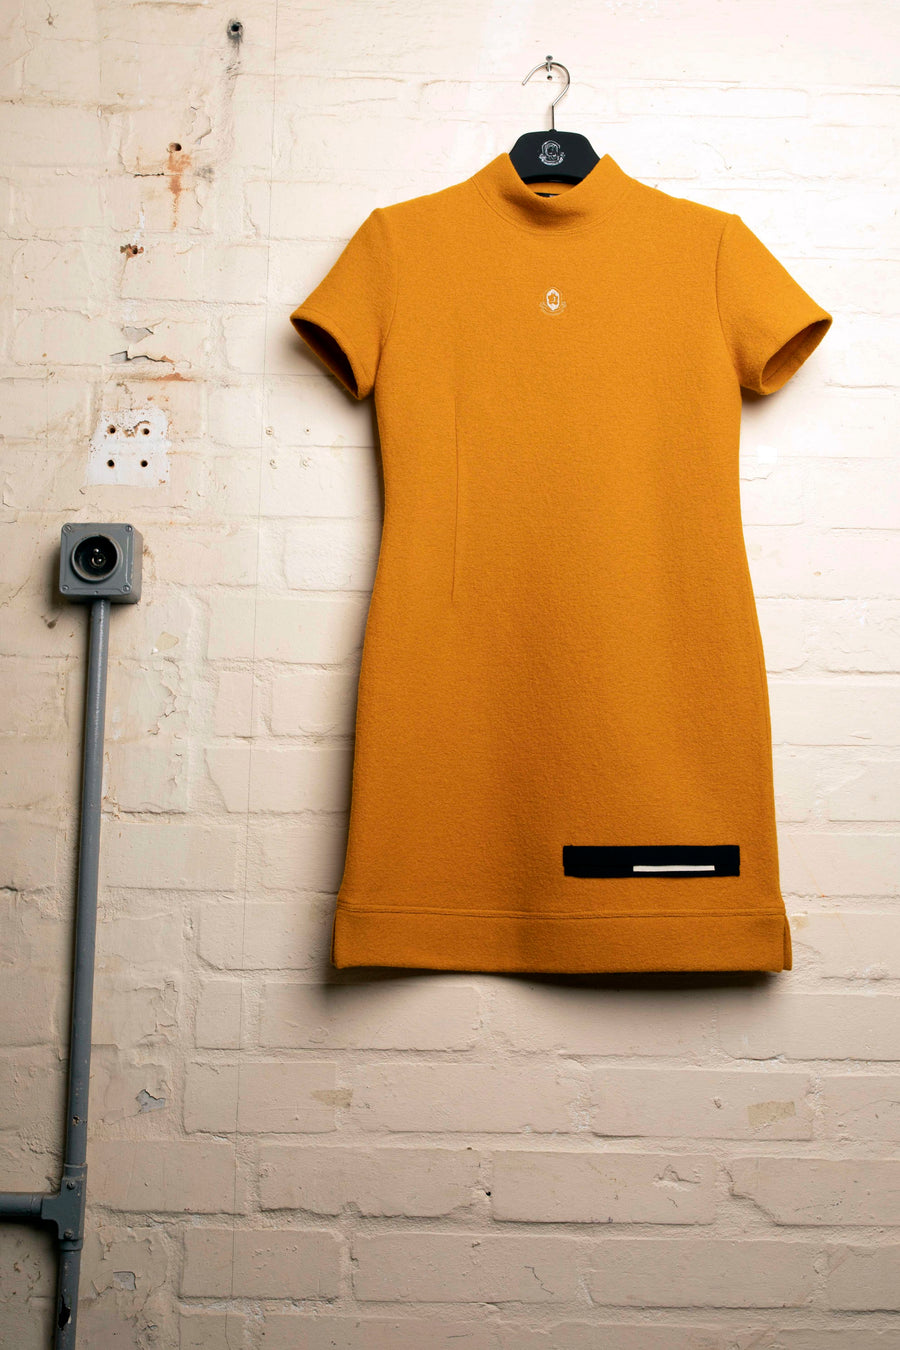 DONNY –MUSTARD JERSEY LOGO DRESS